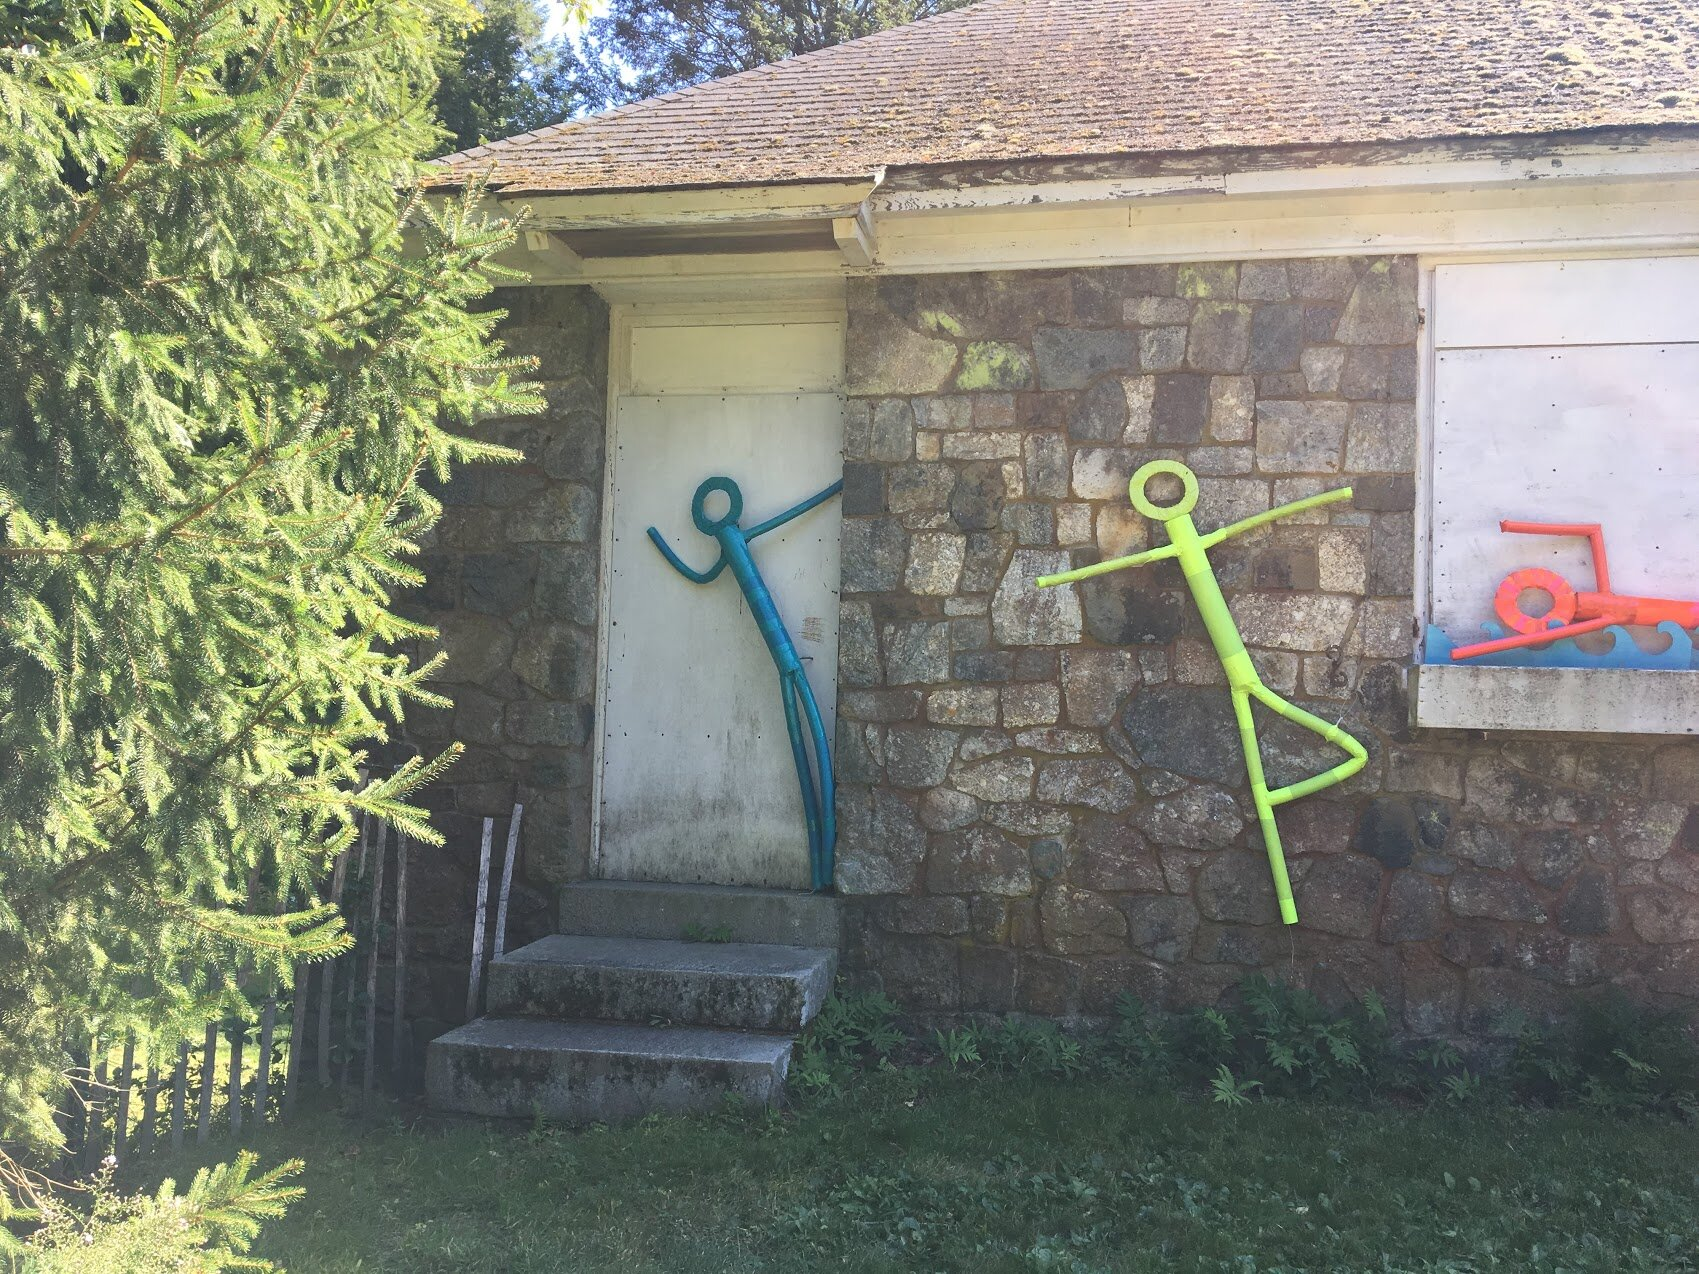 maudslay-state-park-sculpture-pool-noodles.JPG